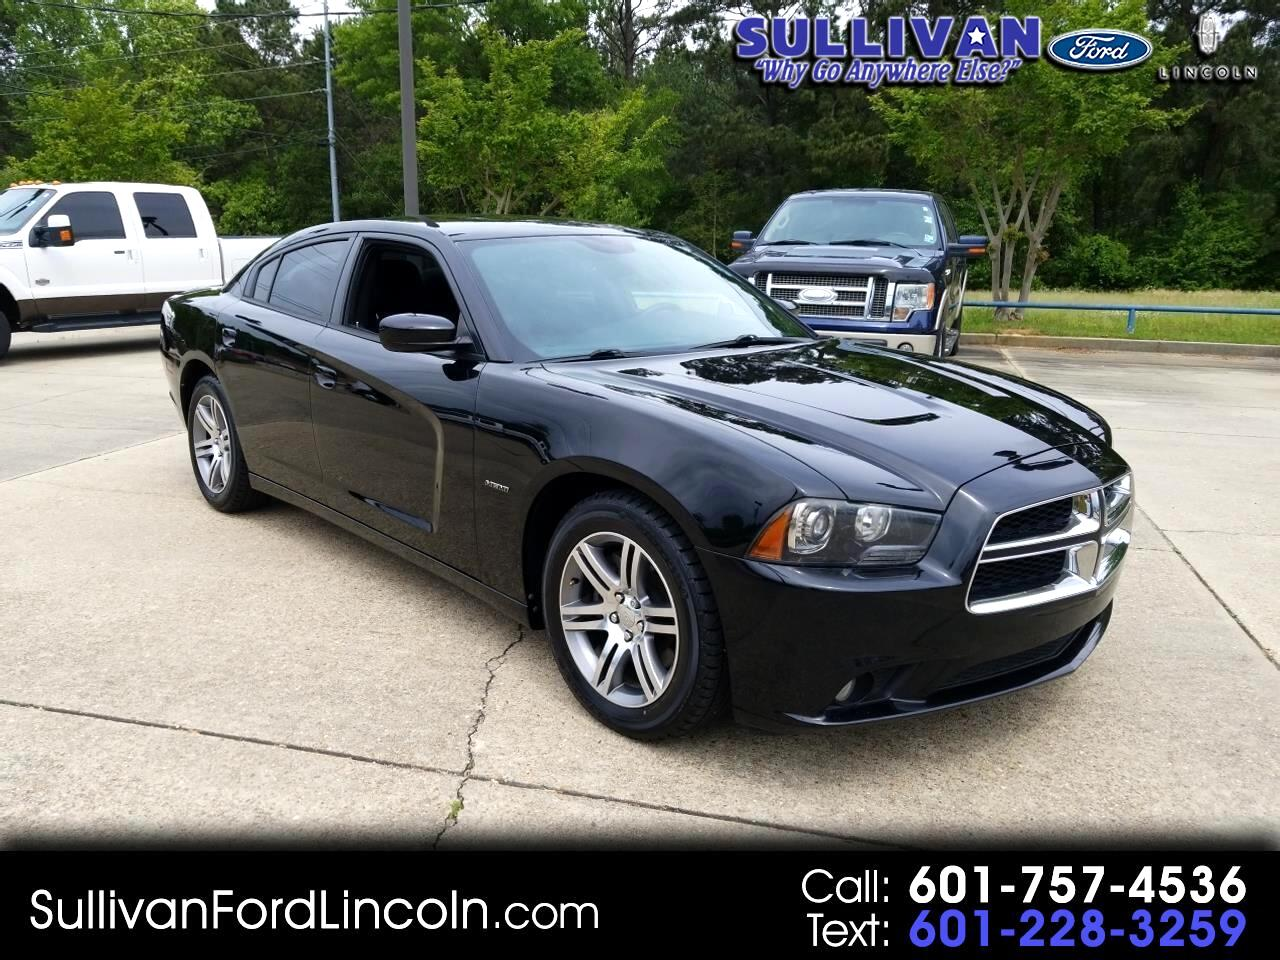 2013 Dodge Charger 4dr Sdn RT RWD